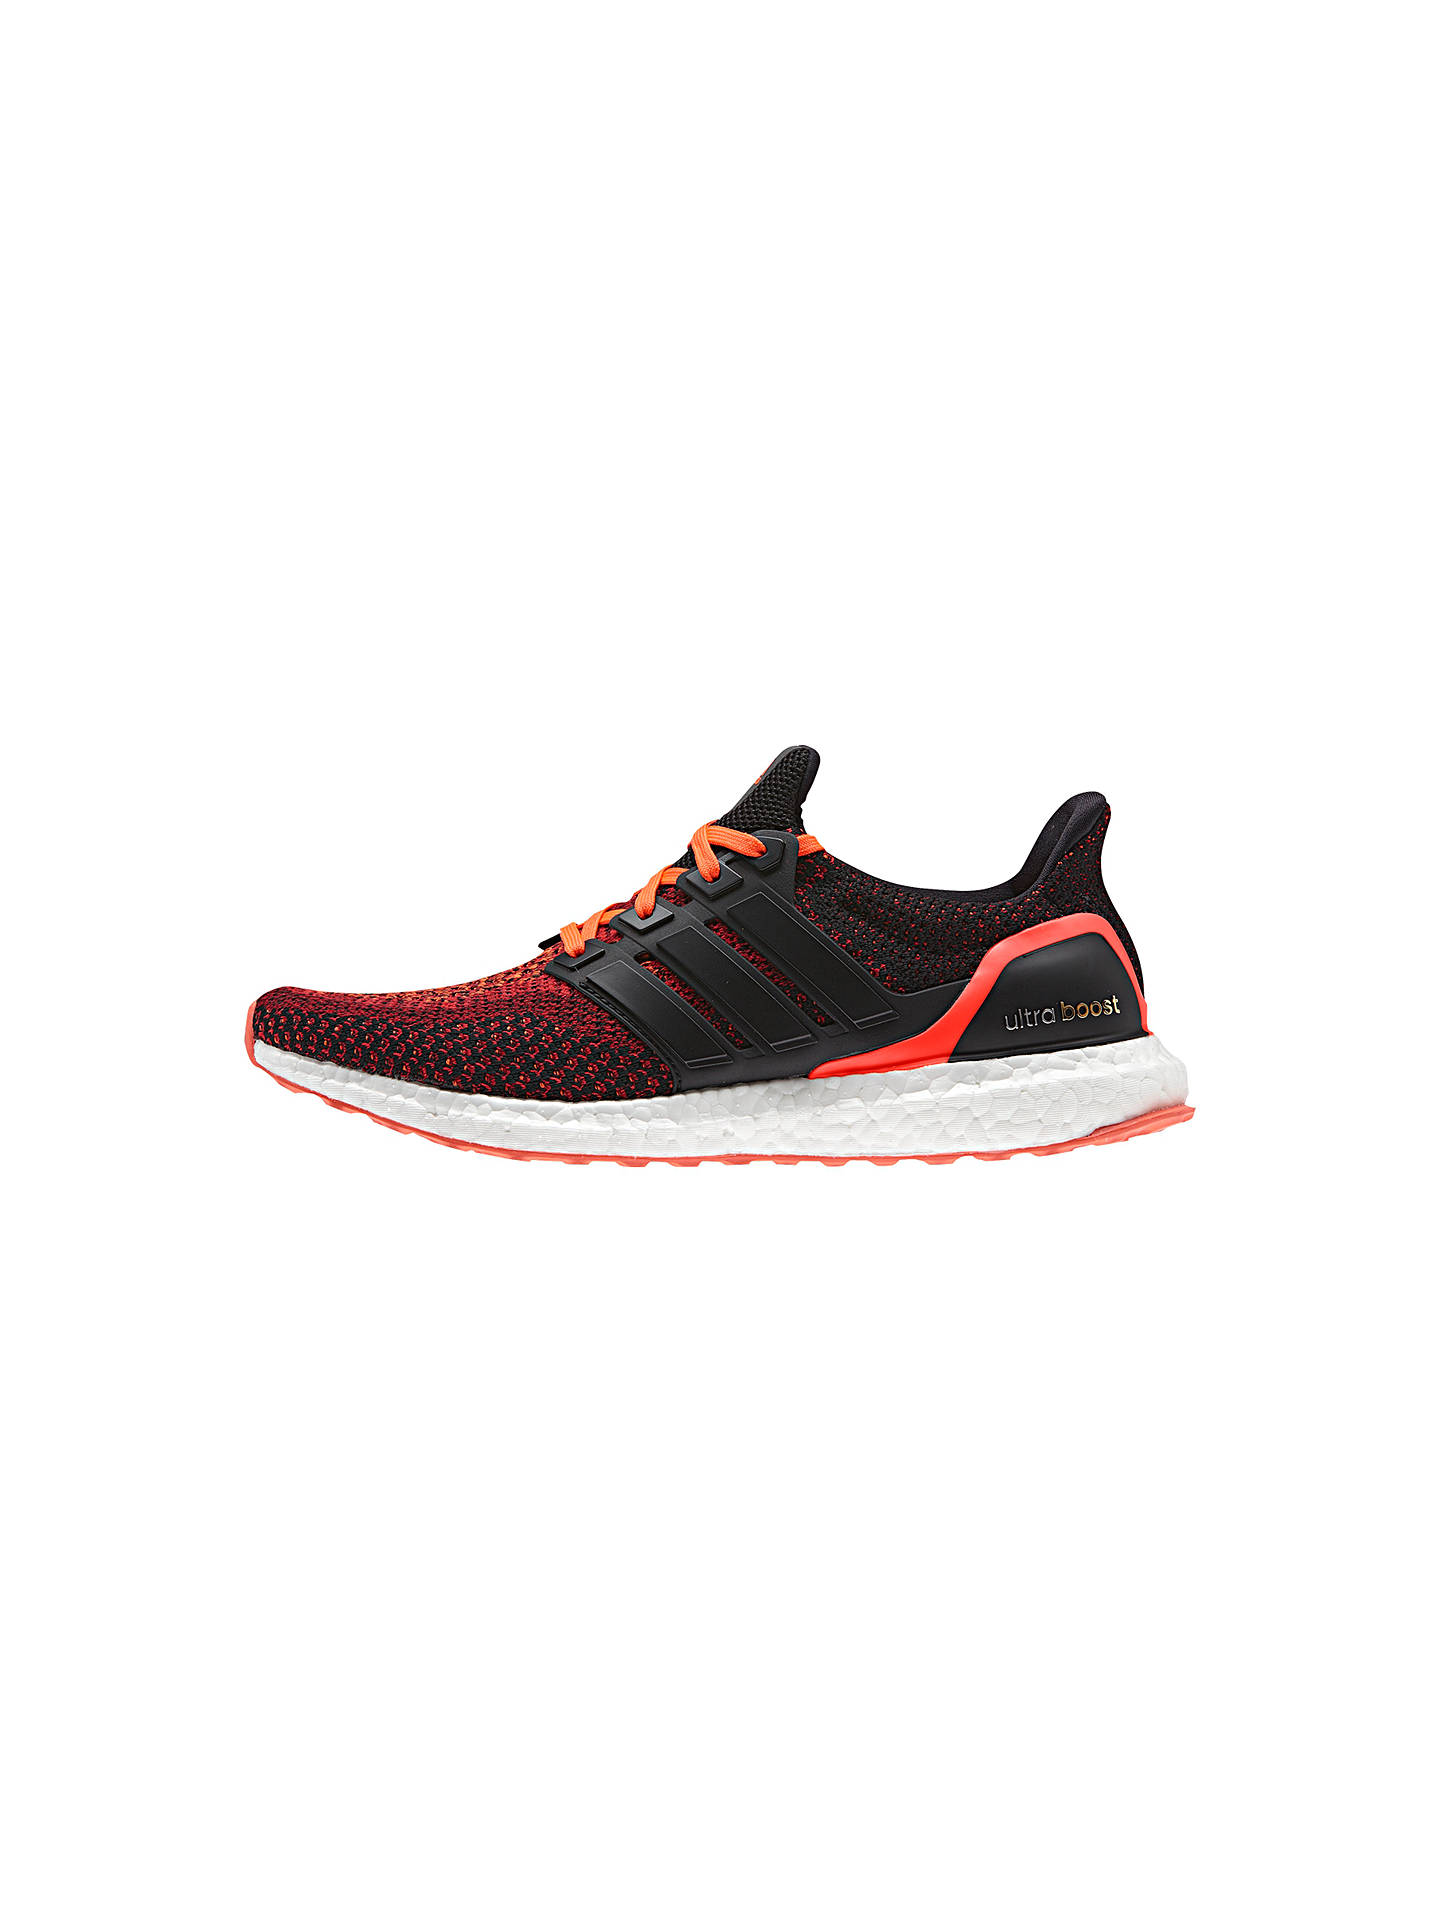 huge selection of 425e7 ab3da Adidas Ultra Boost Men's Running Shoes at John Lewis & Partners